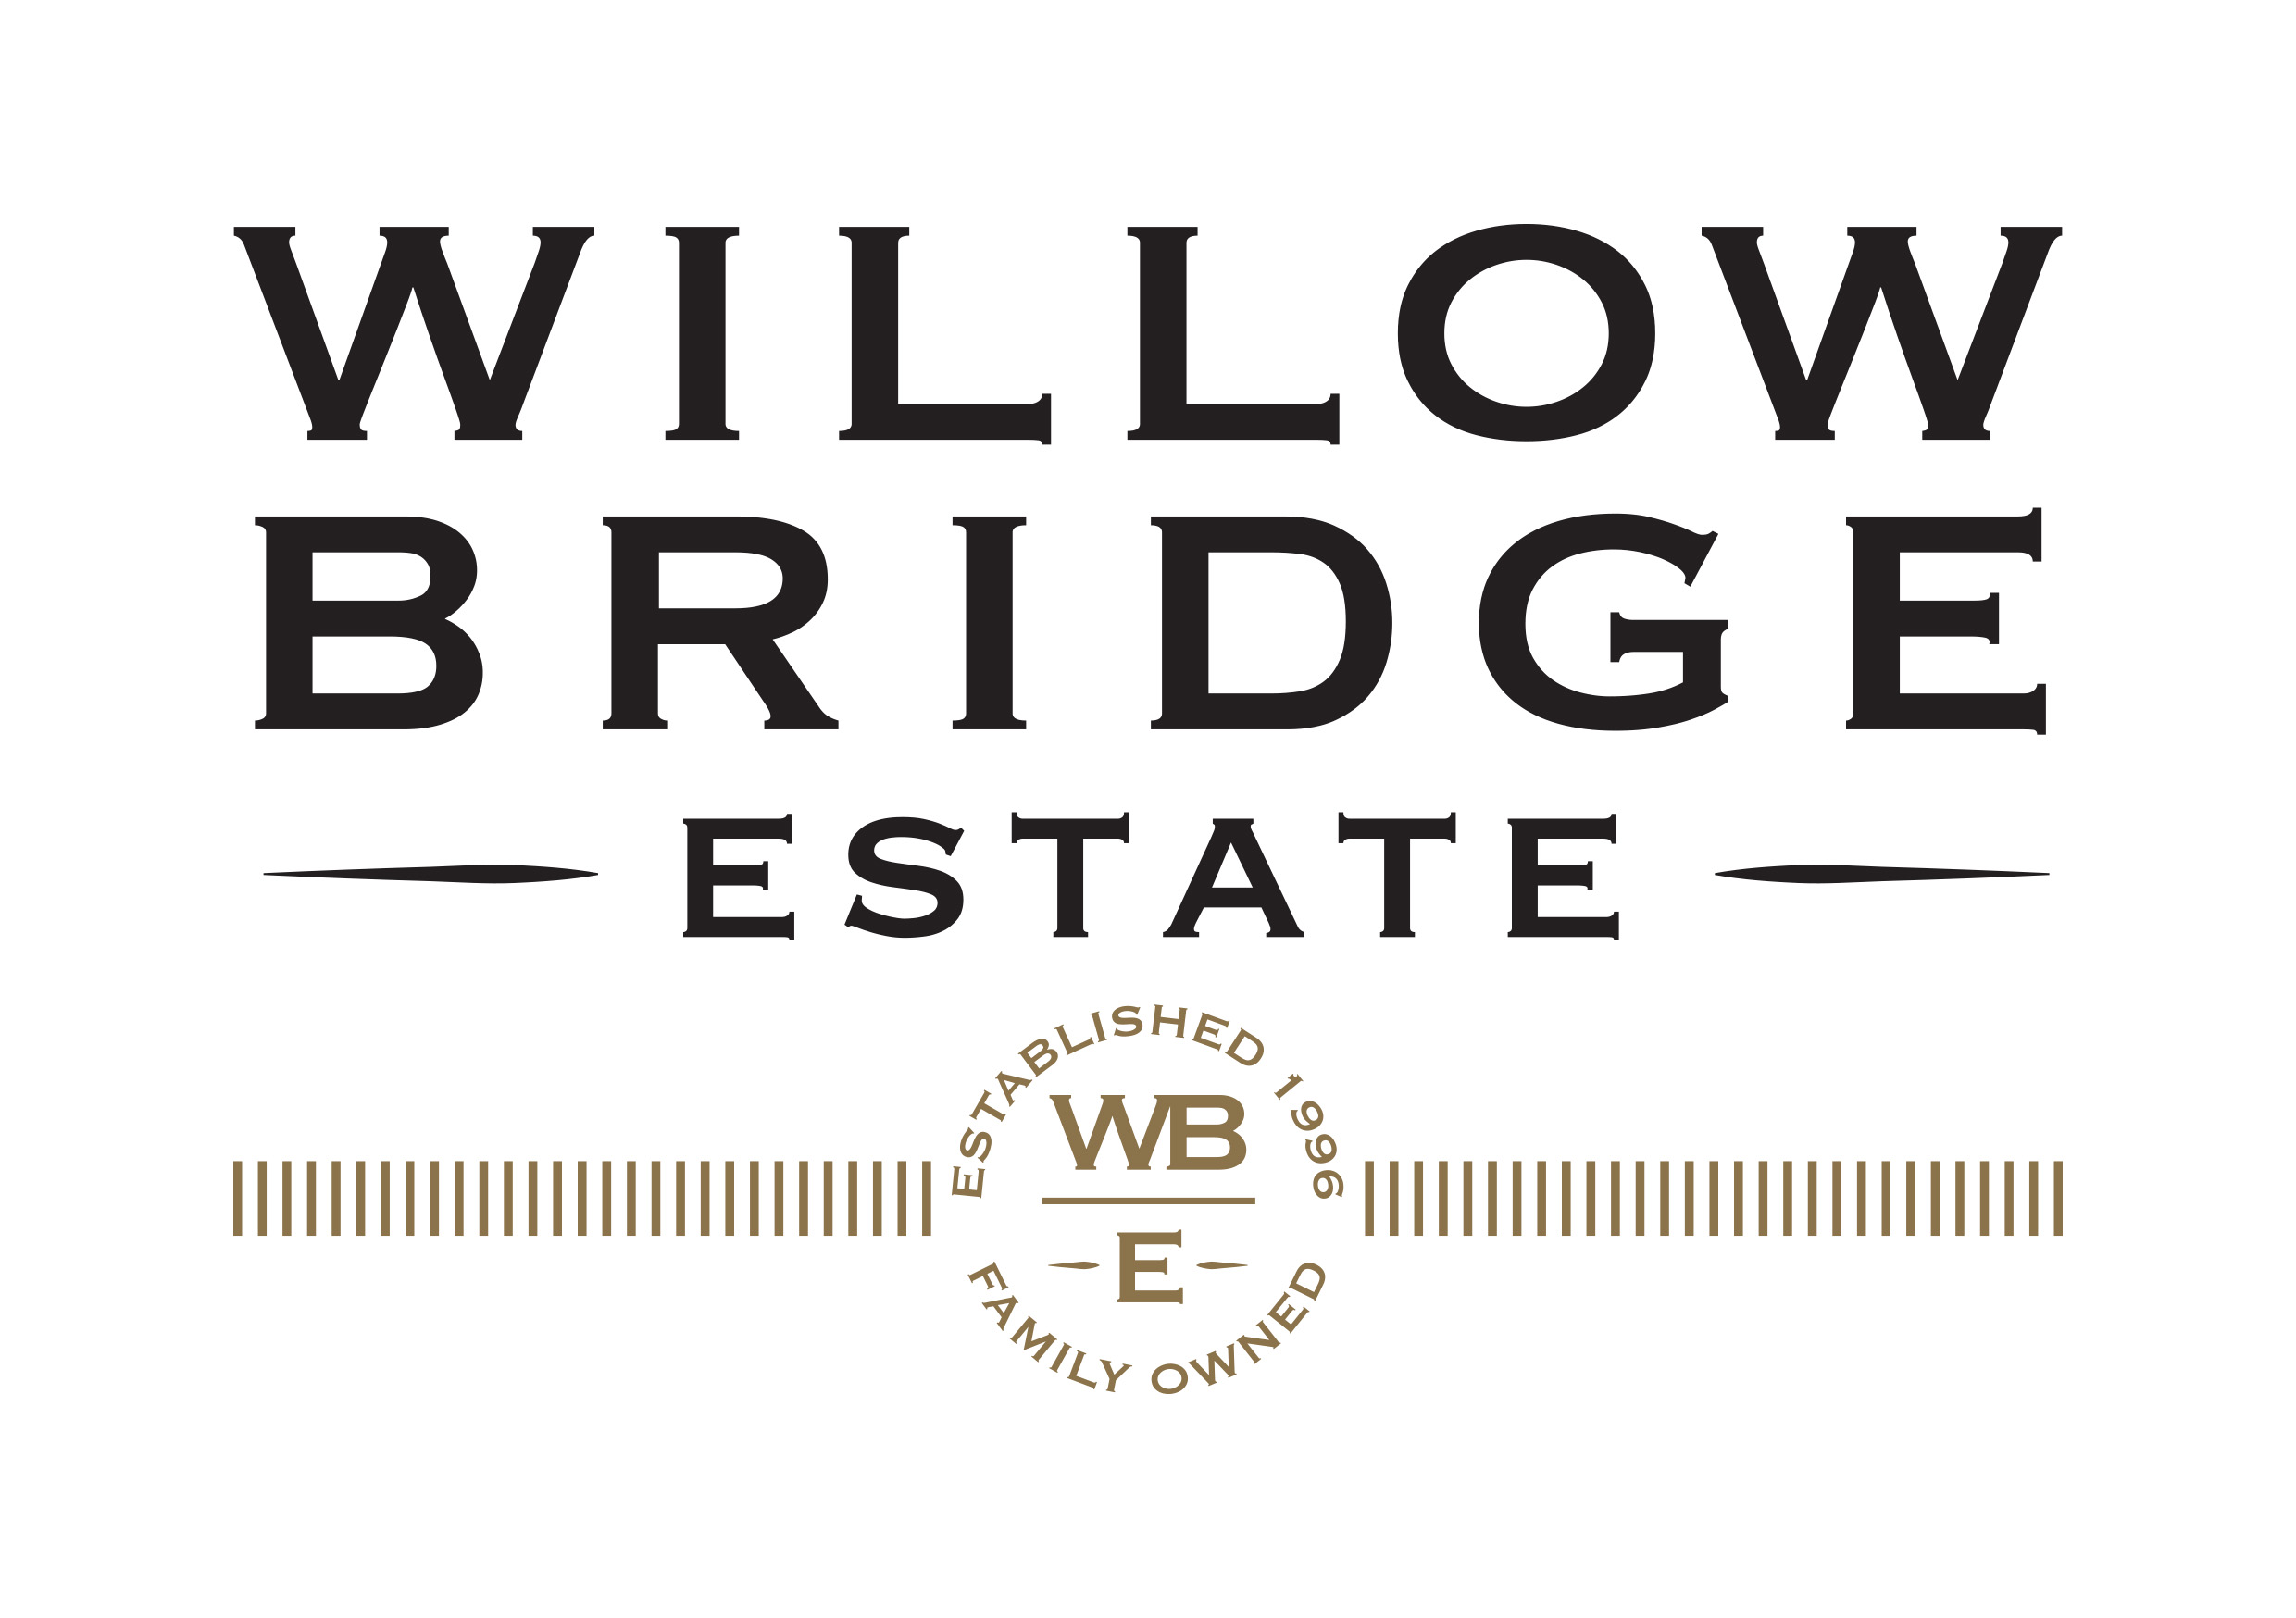 jenna nash - Willow Bridge Estate Logo.jpg